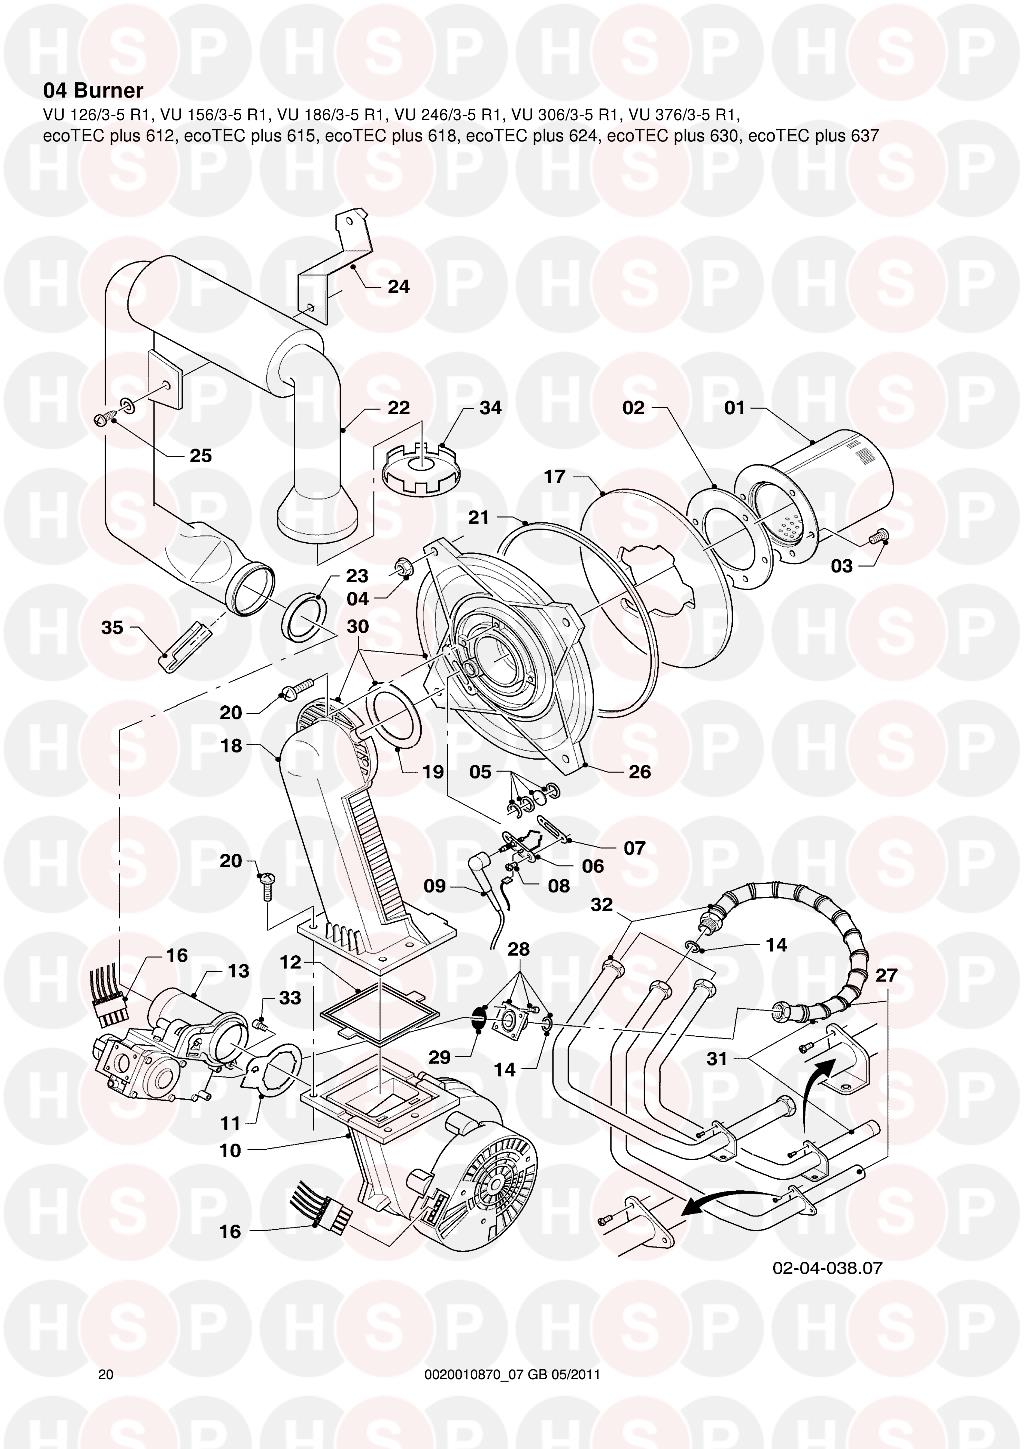 Vaillant ecotec plus 637 vu 3763 5 r1 2006 2012 appliance diagram click the diagram to open it on a new page asfbconference2016 Images